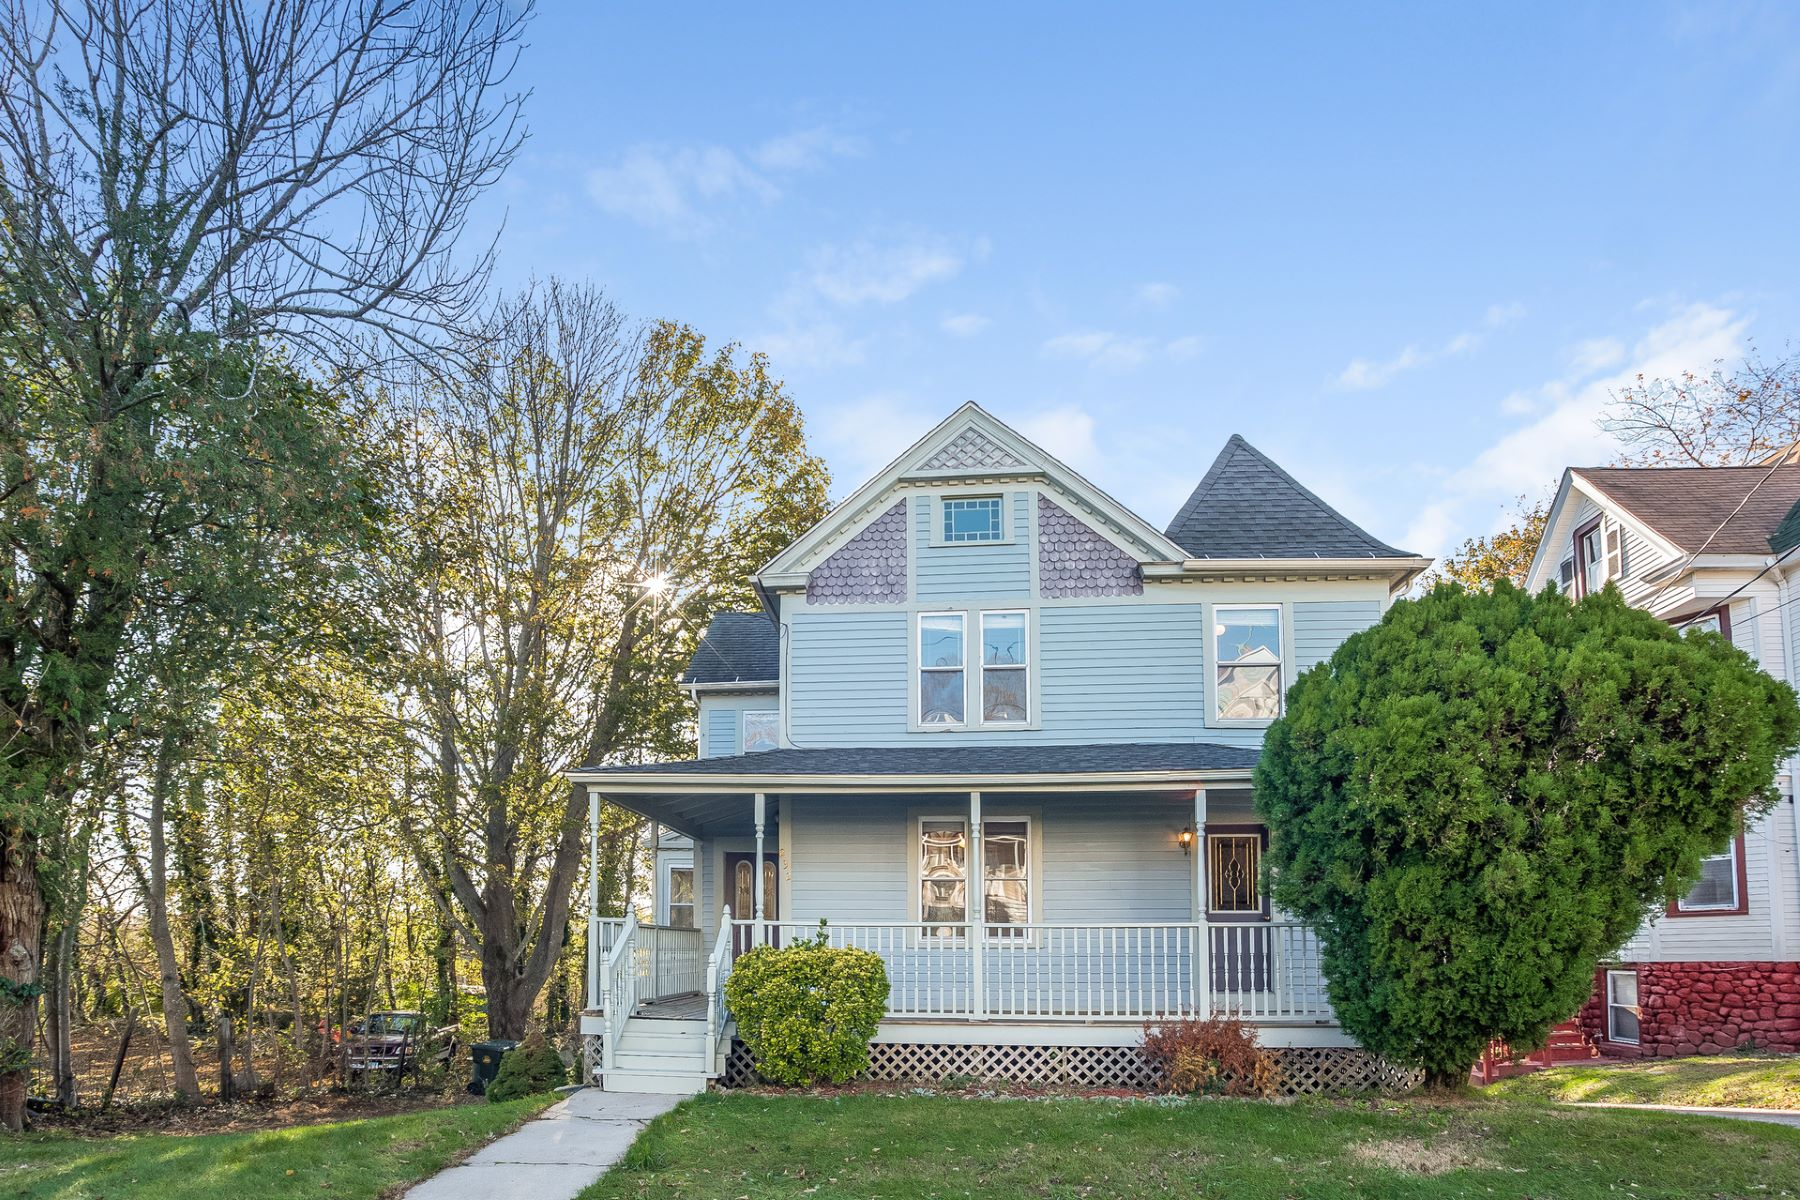 Casa Unifamiliar por un Venta en Spacious and Updated Colonial 232 Crystal Ave, New London, Connecticut, 06320 Estados Unidos